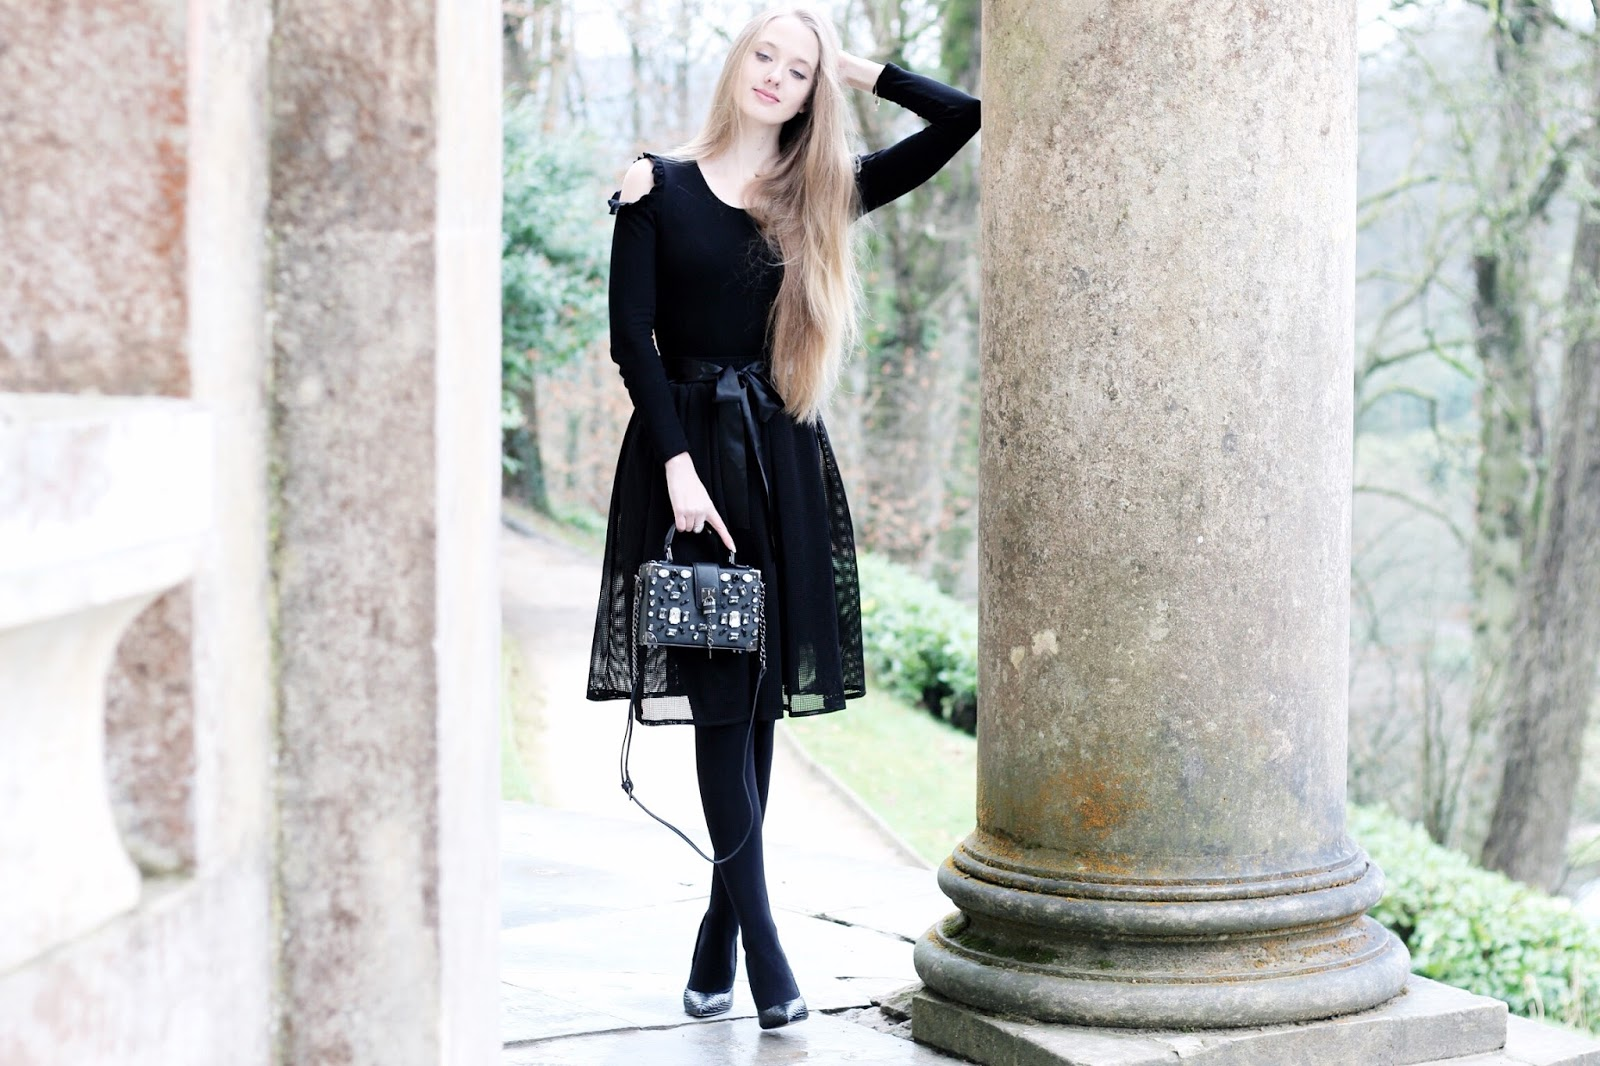 All black styling a statement bag in winter